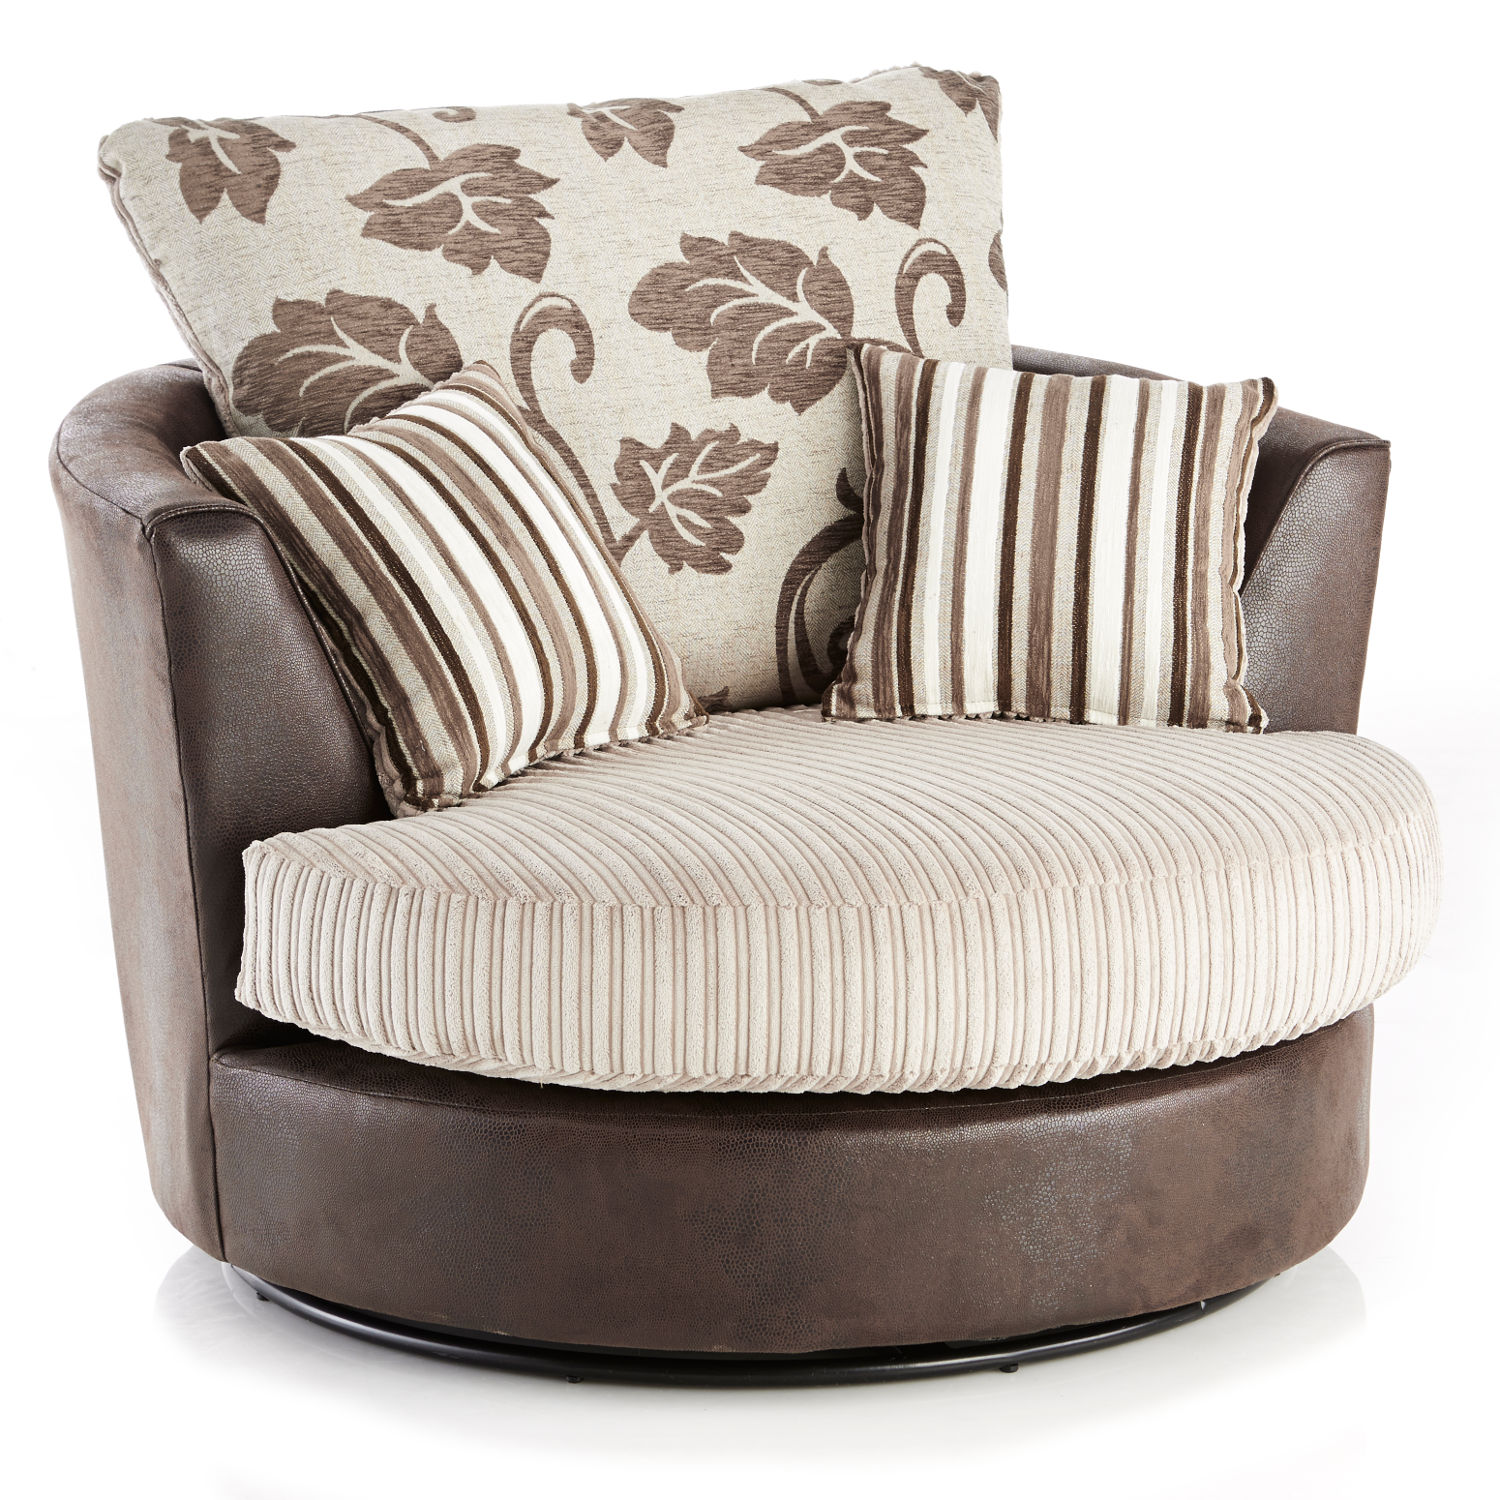 revolving chair for salon green kitchen chairs beige jumbo cord sofa new blog wallpapers